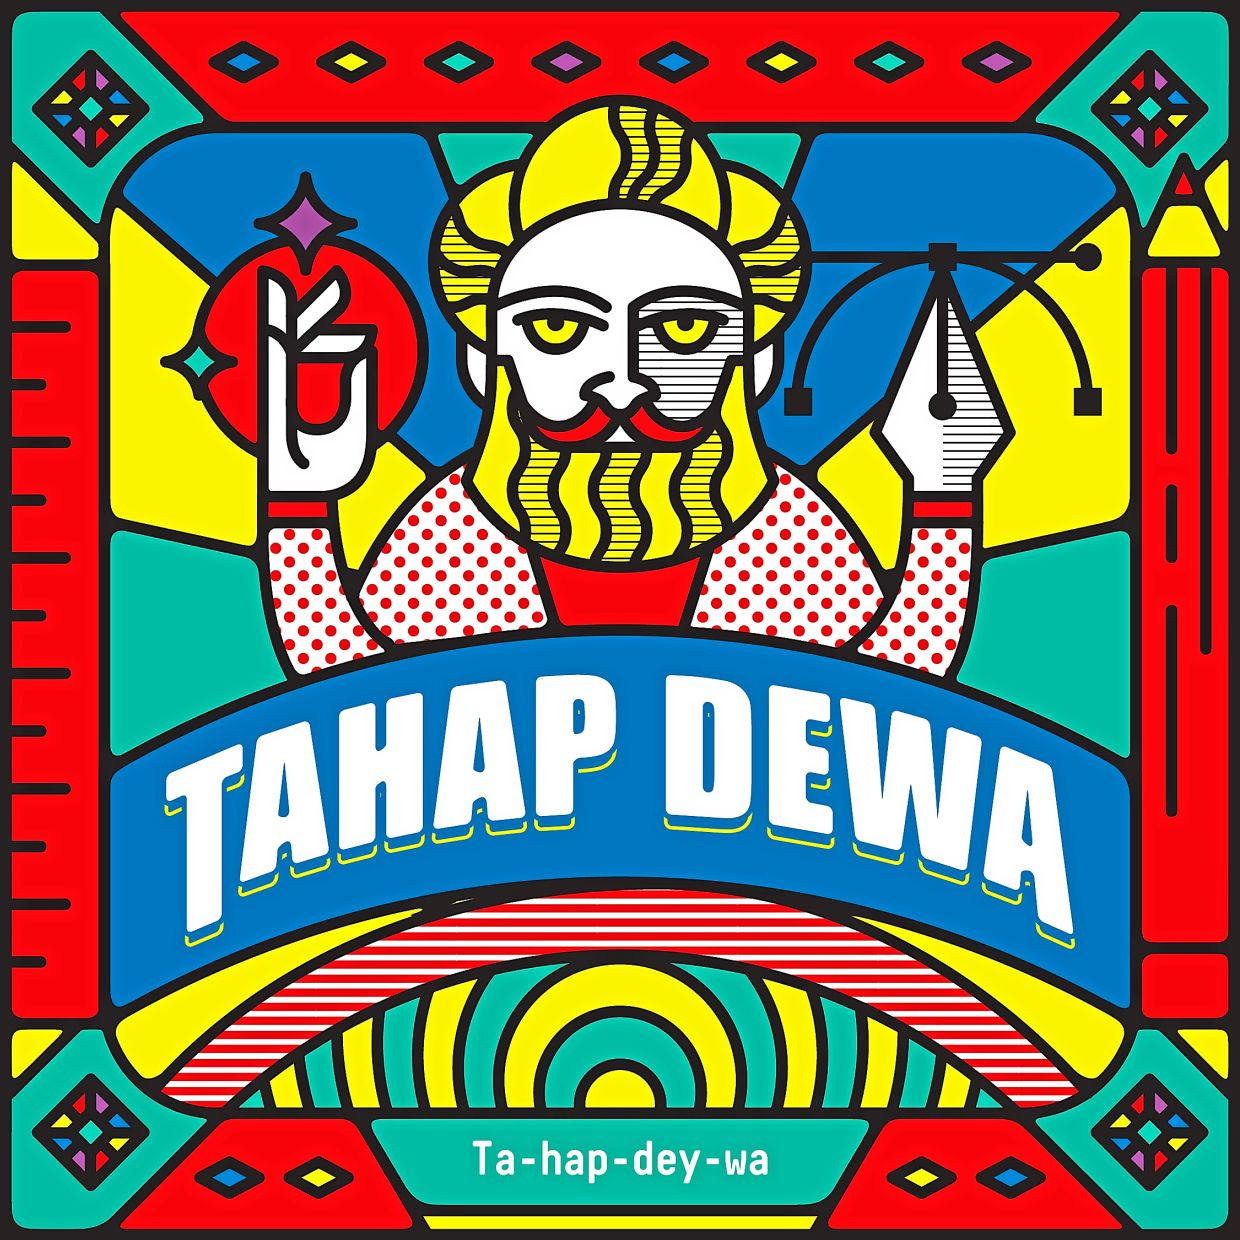 Tahap dewa is used to describe someone with very good skills or capabilities.